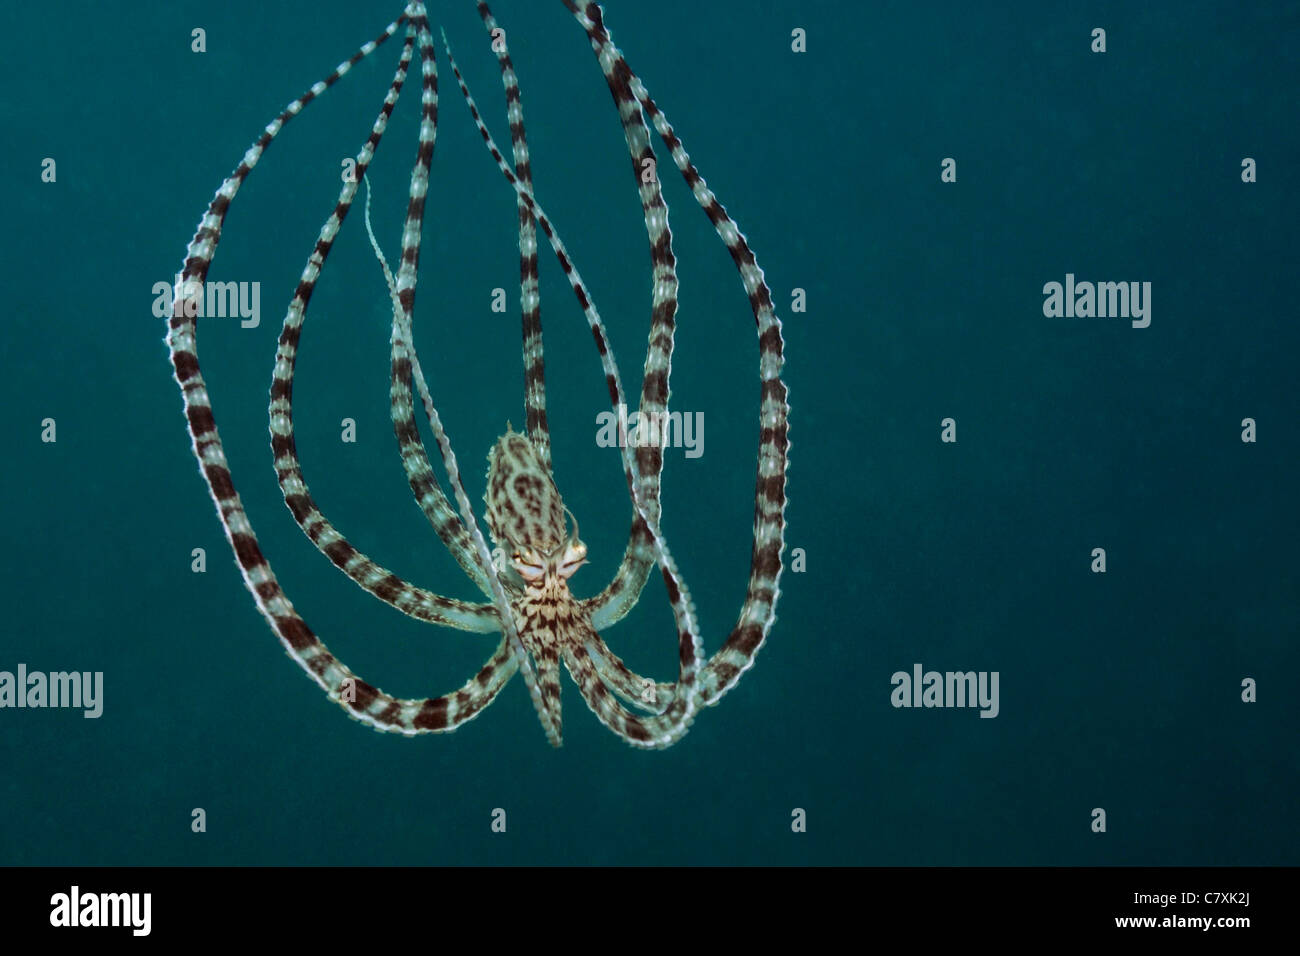 Mimic Octopus, Thaumoctopus mimicus, Lembeh Strait, Sulawesi, Indonesia - Stock Image